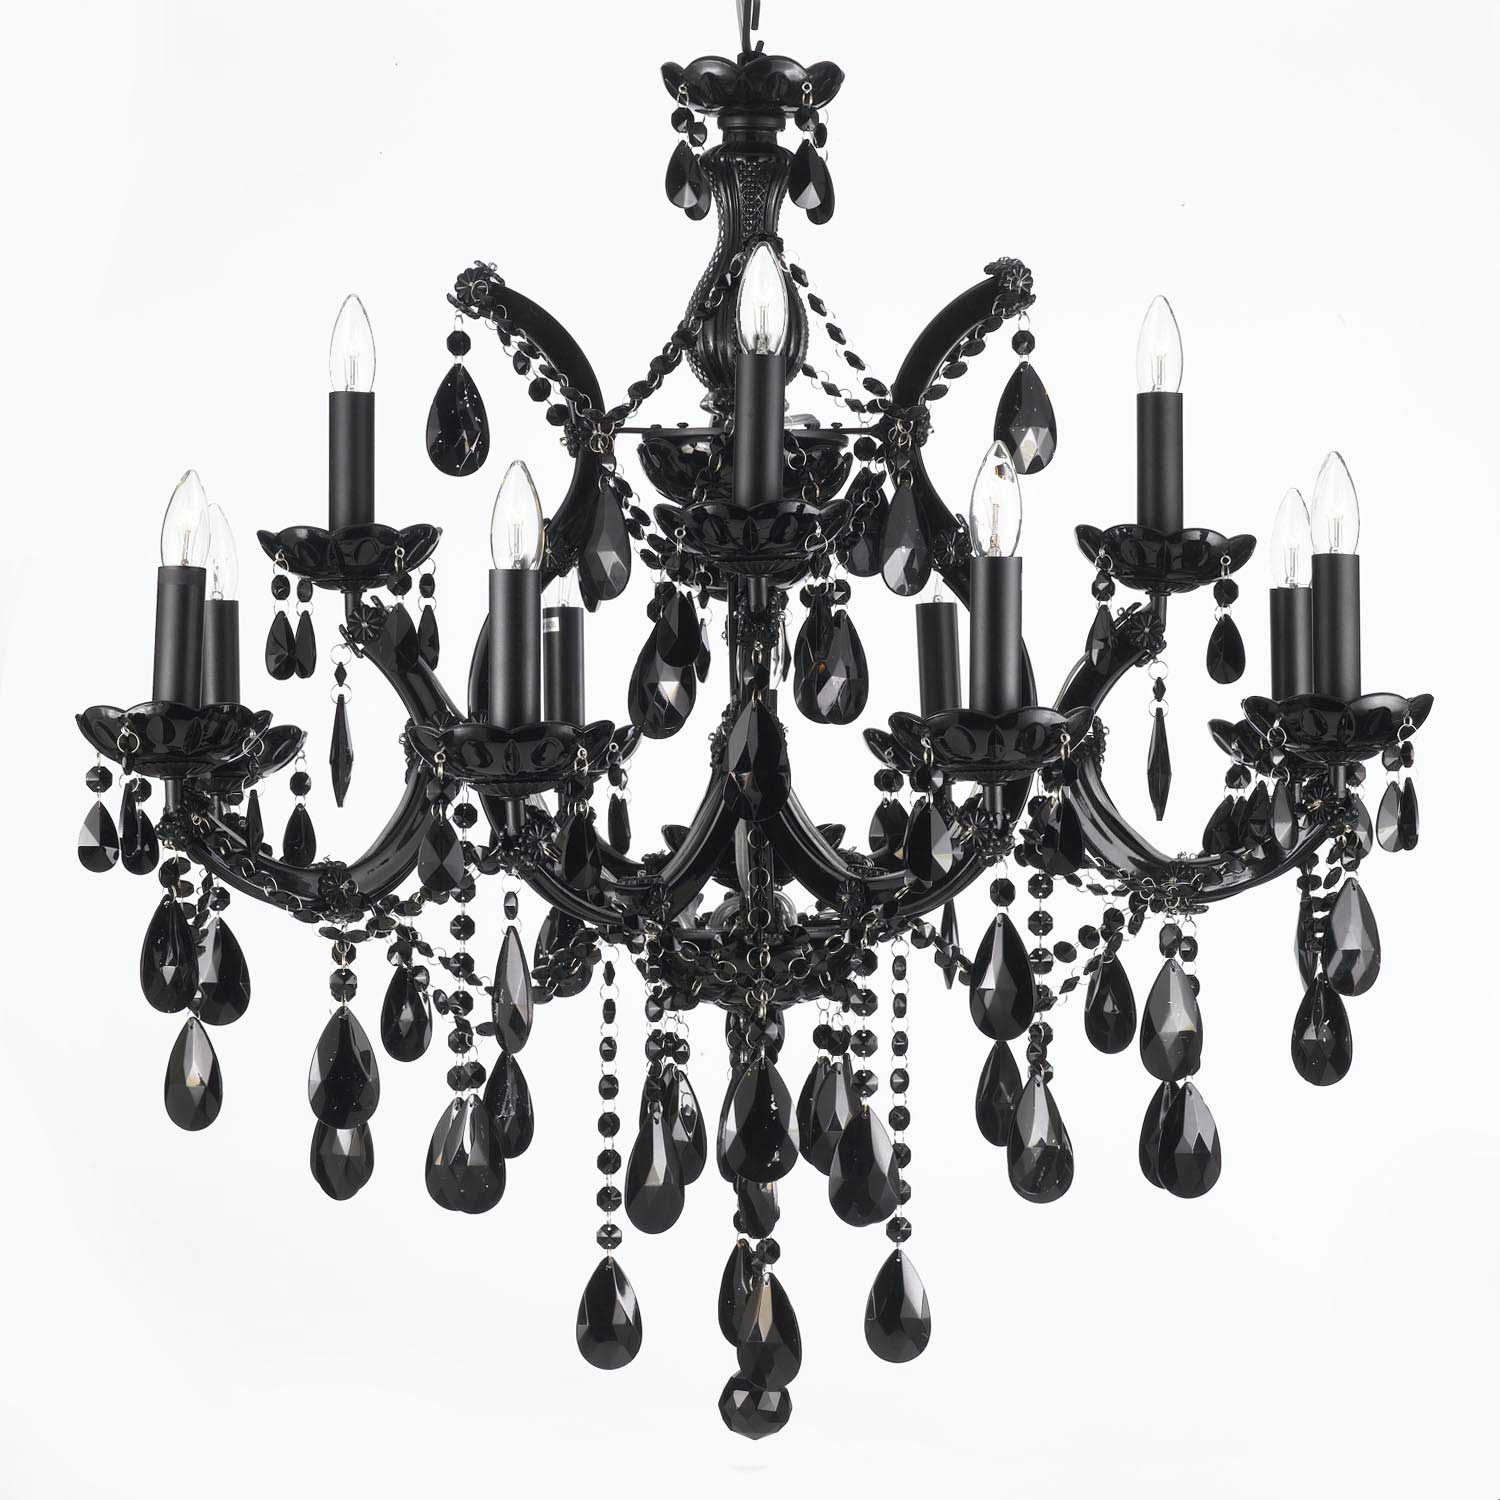 Gallery chandelier 84 chandelier designs gallery chandelier 84 designs arubaitofo Image collections